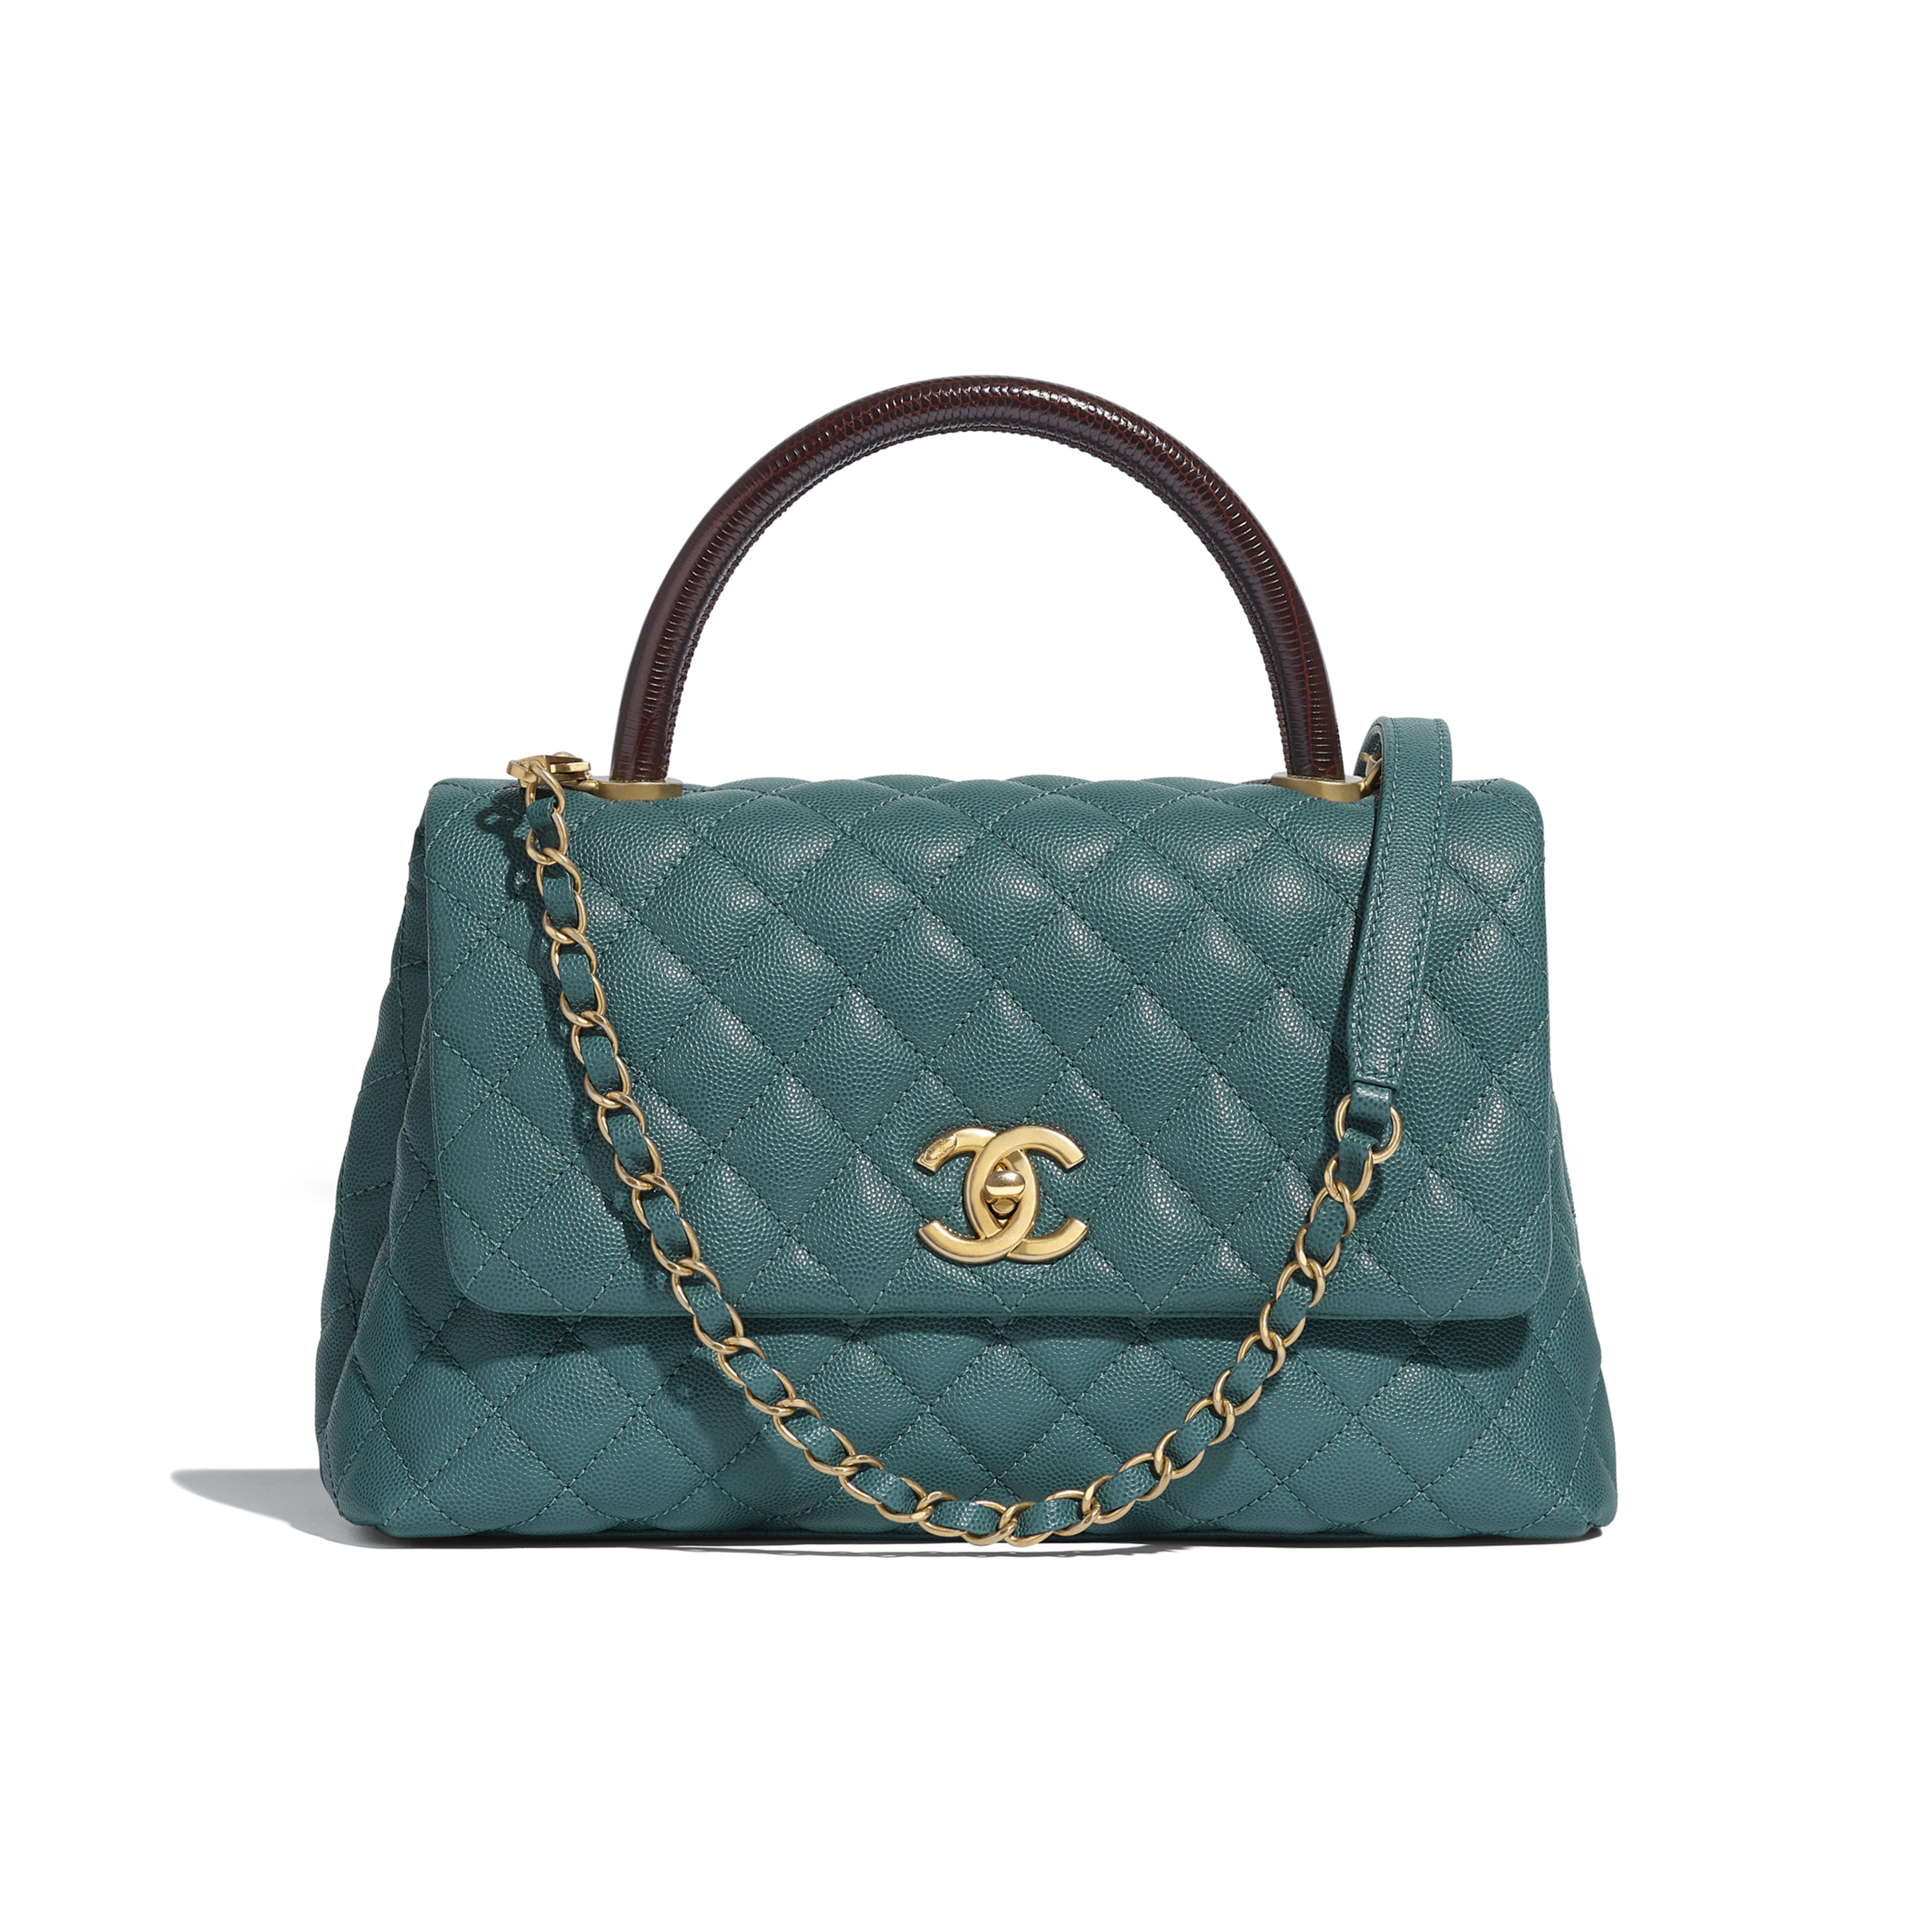 Flap Bag with Top Handle - Turquoise & Burgundy - Grained Calfskin, Lizard Embossed Calfskin & Gold-Tone Metal - Default view - see full sized version